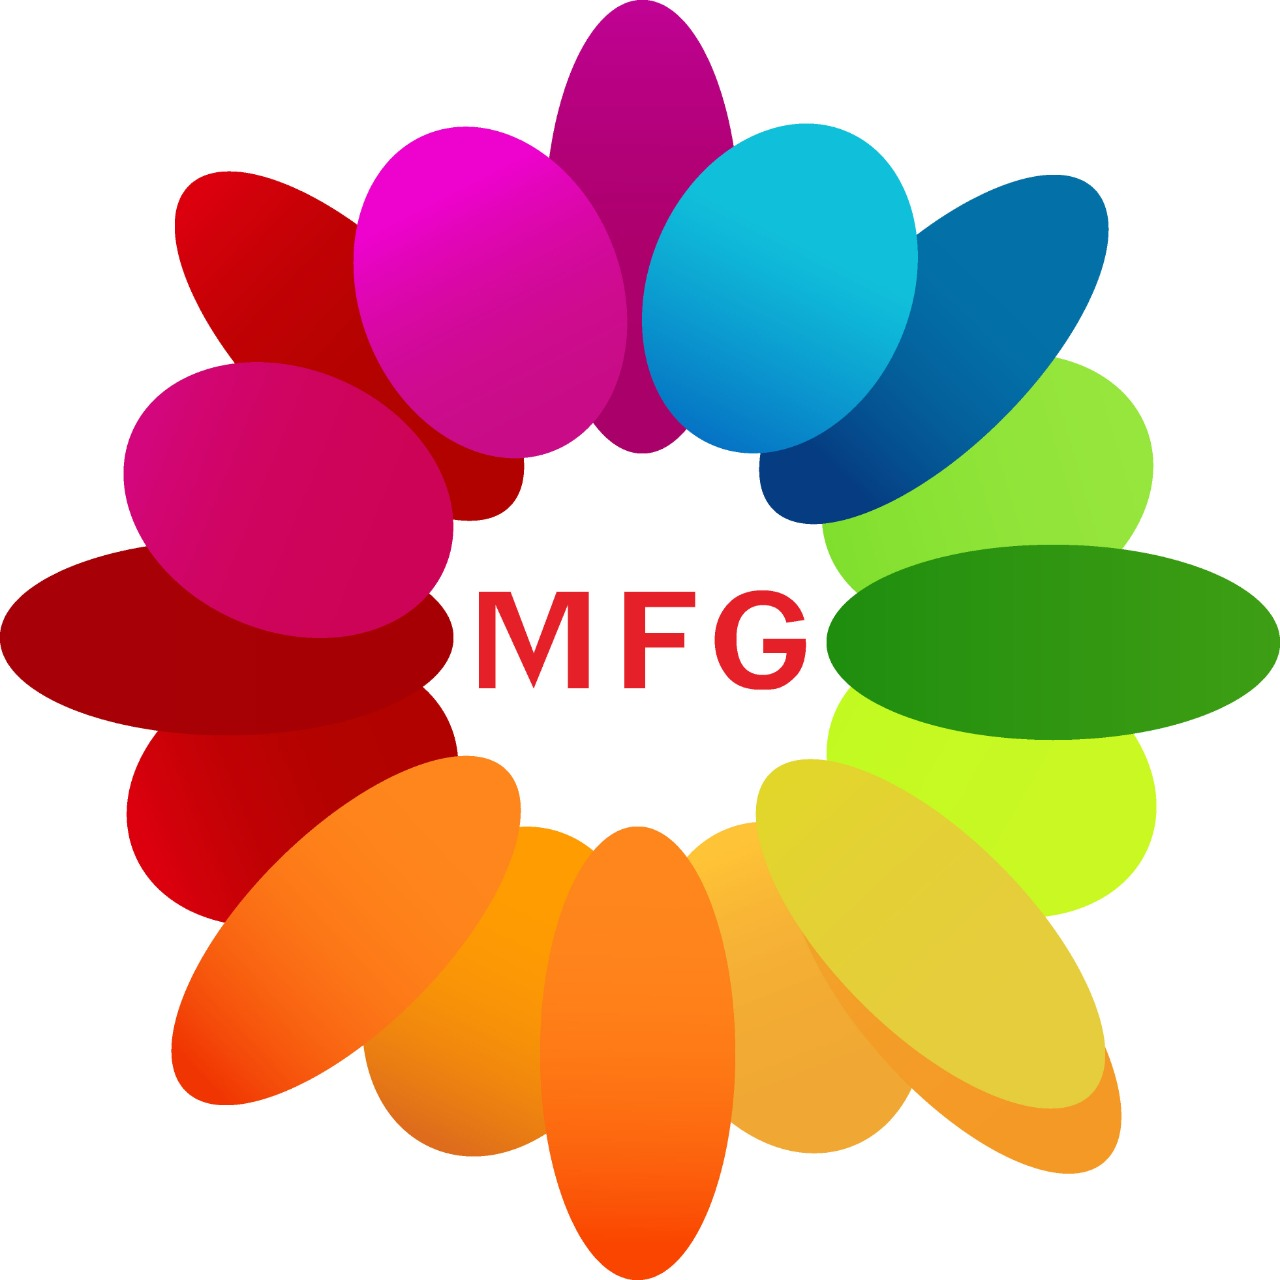 Blue Orchids and white carnations Arrangement